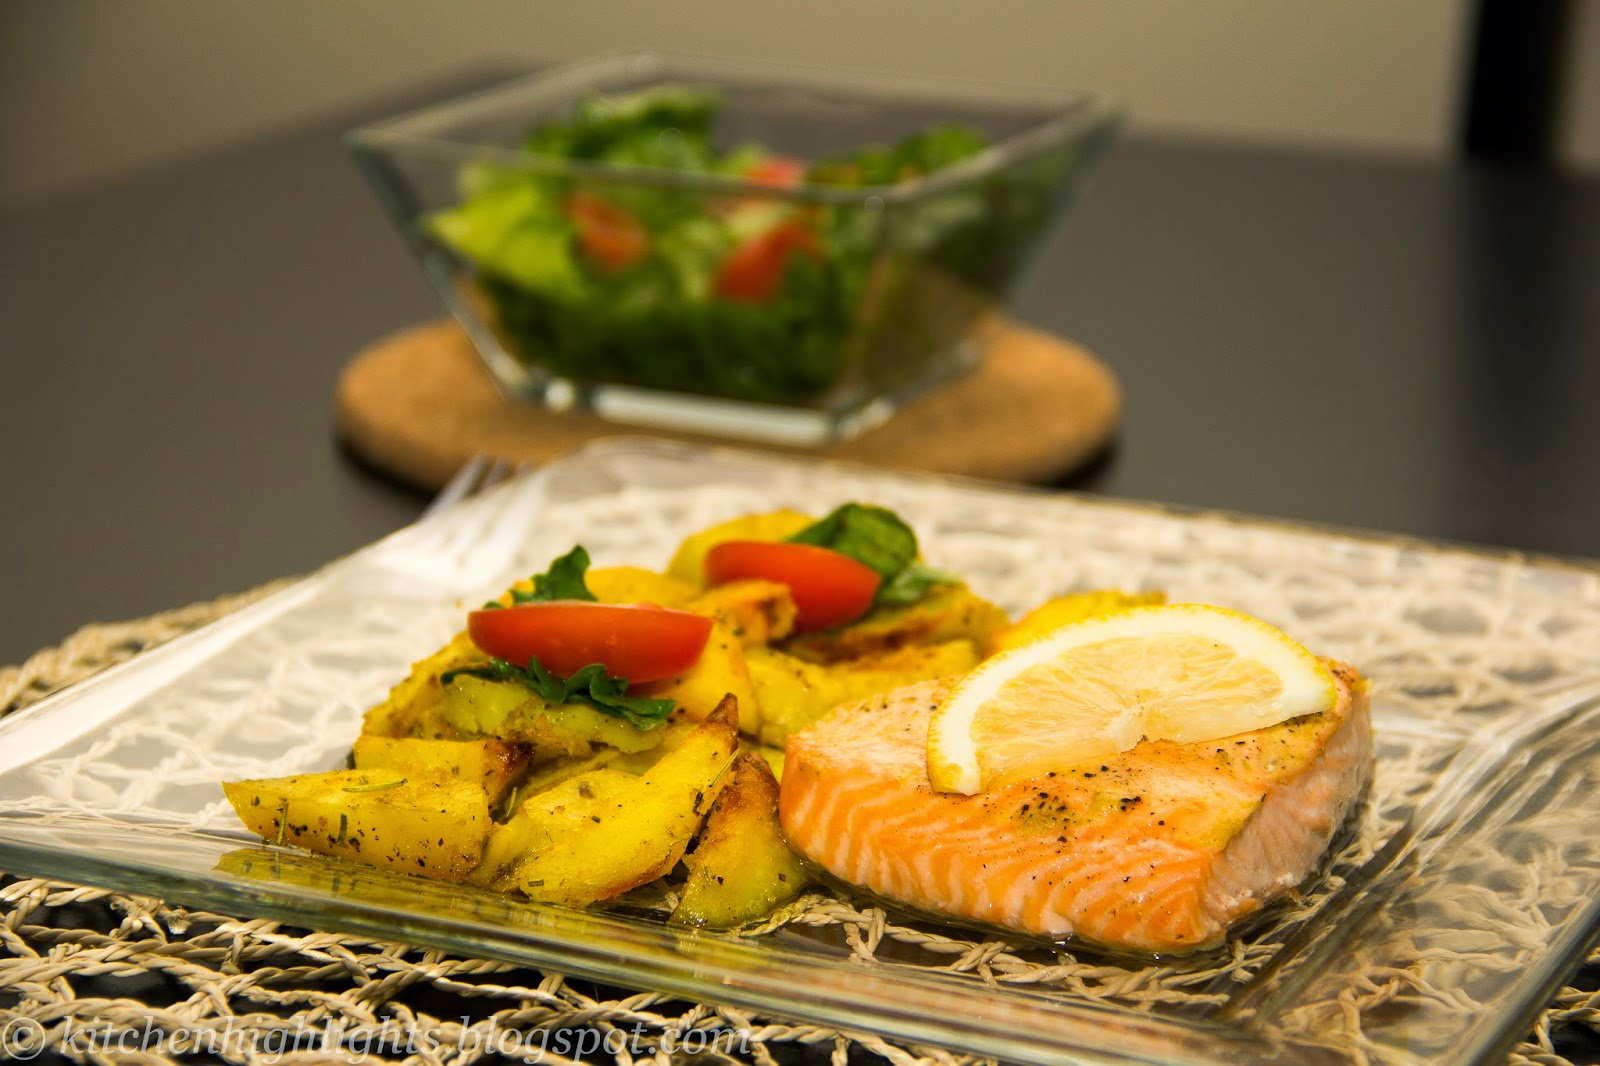 Salmon with crunchy potatoes is a brilliantly simple dinner dish